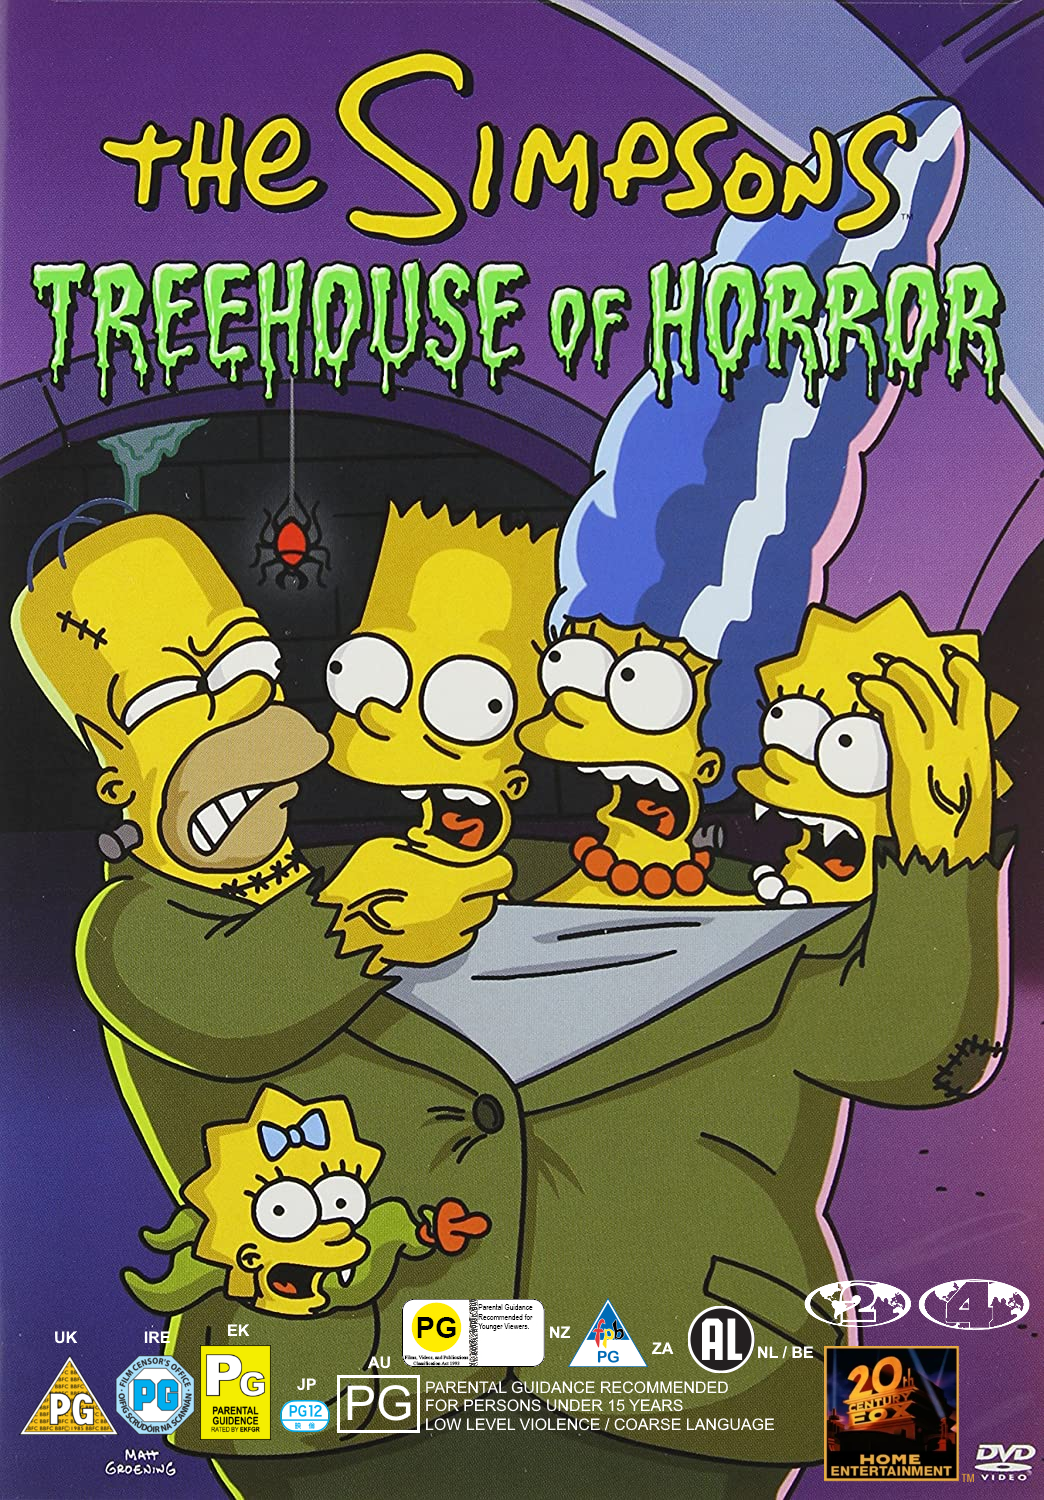 The Simpsons Treehouse of Horror (DVD, Region 2/4, fictional, 2002)